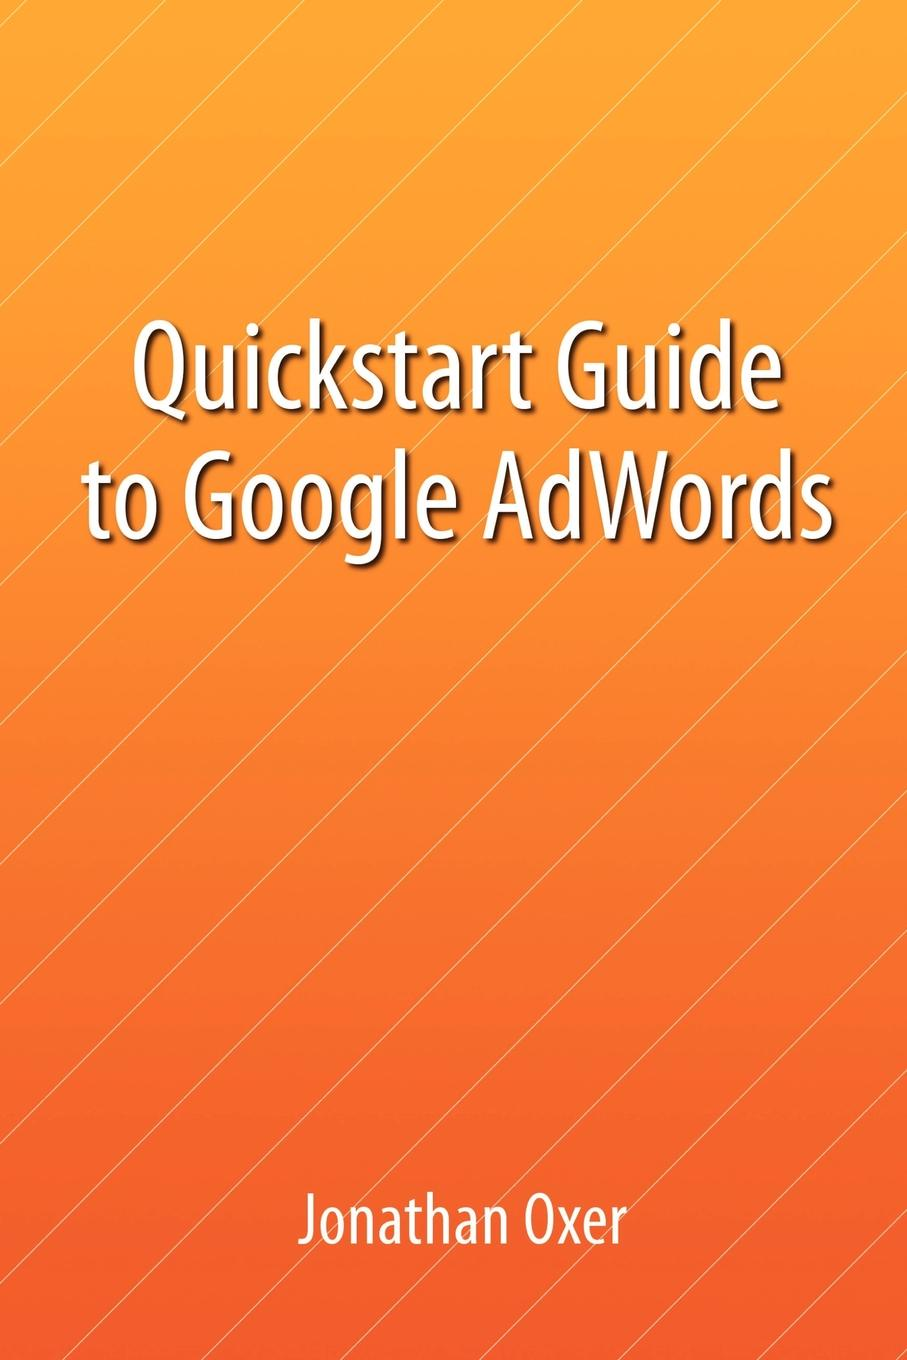 Jonathan Oxer Quickstart Guide To Google AdWords chris treadaway facebook marketing an hour a day